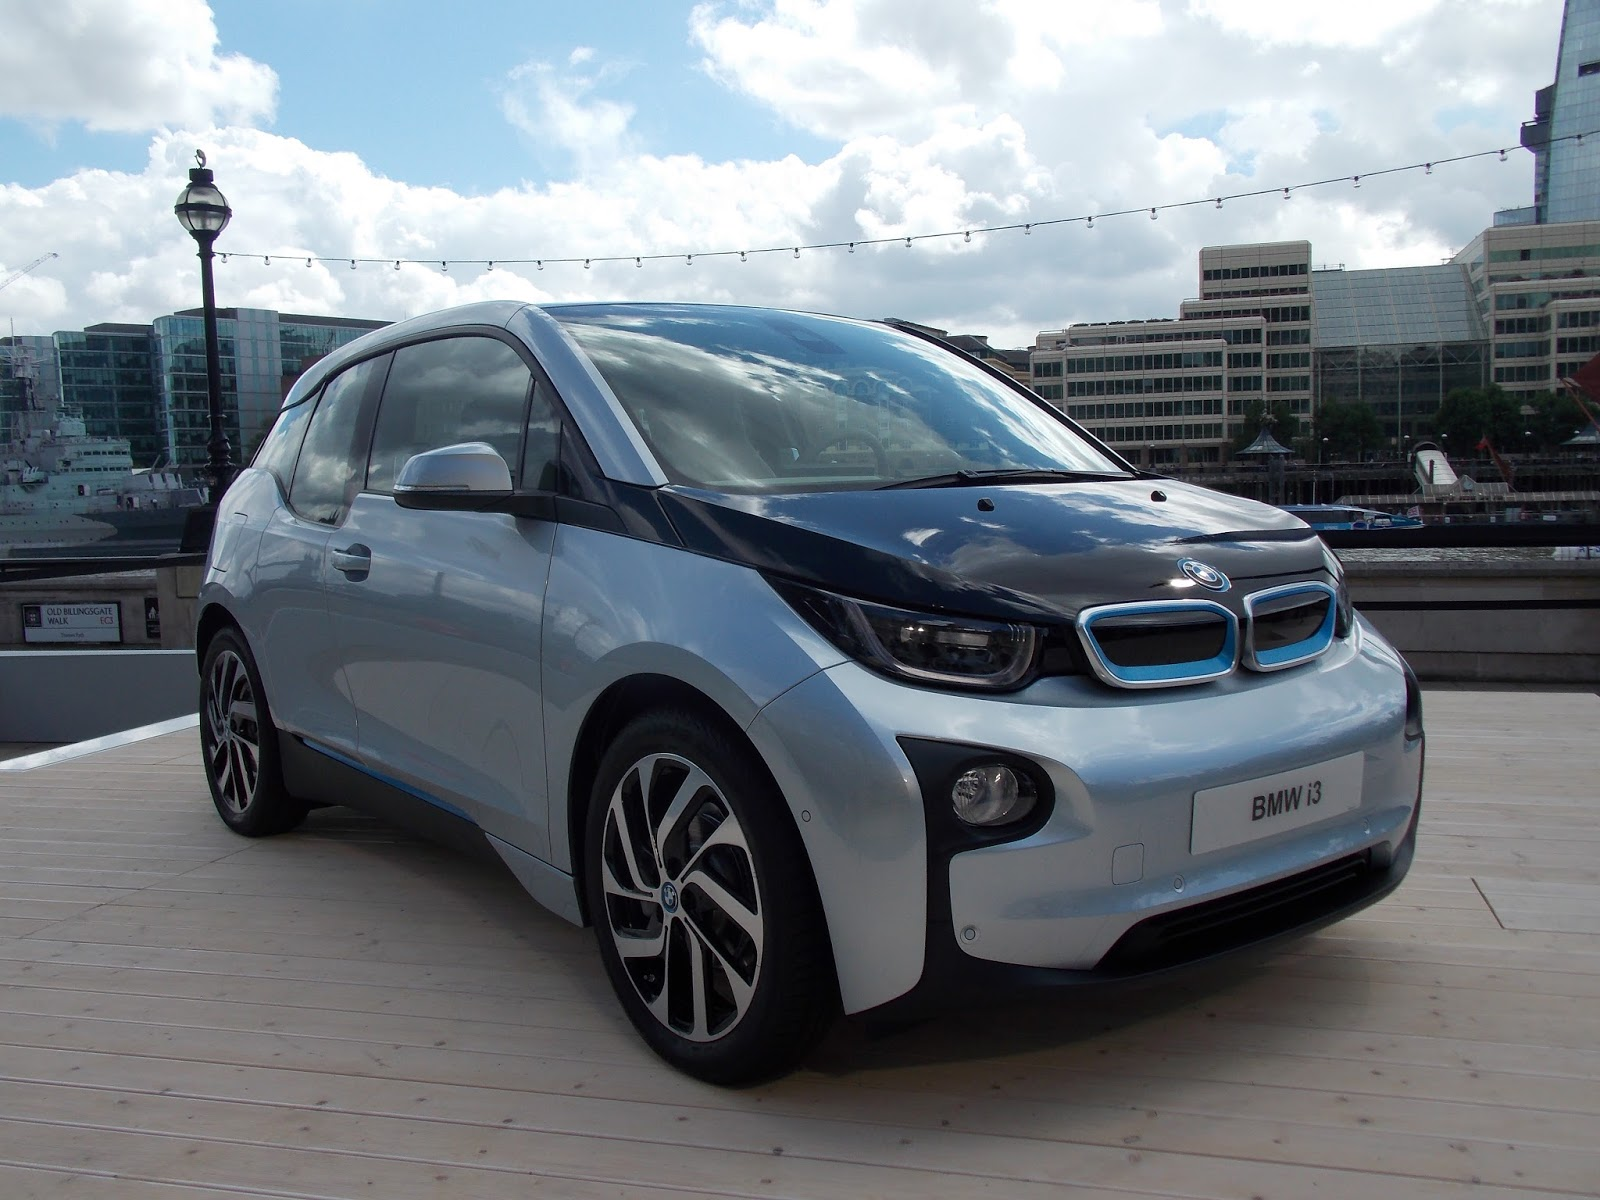 bmw electrique i3 bmw i3 une nouvelle autonomie de 200 km en 2016 photo bmw i3 voiture. Black Bedroom Furniture Sets. Home Design Ideas